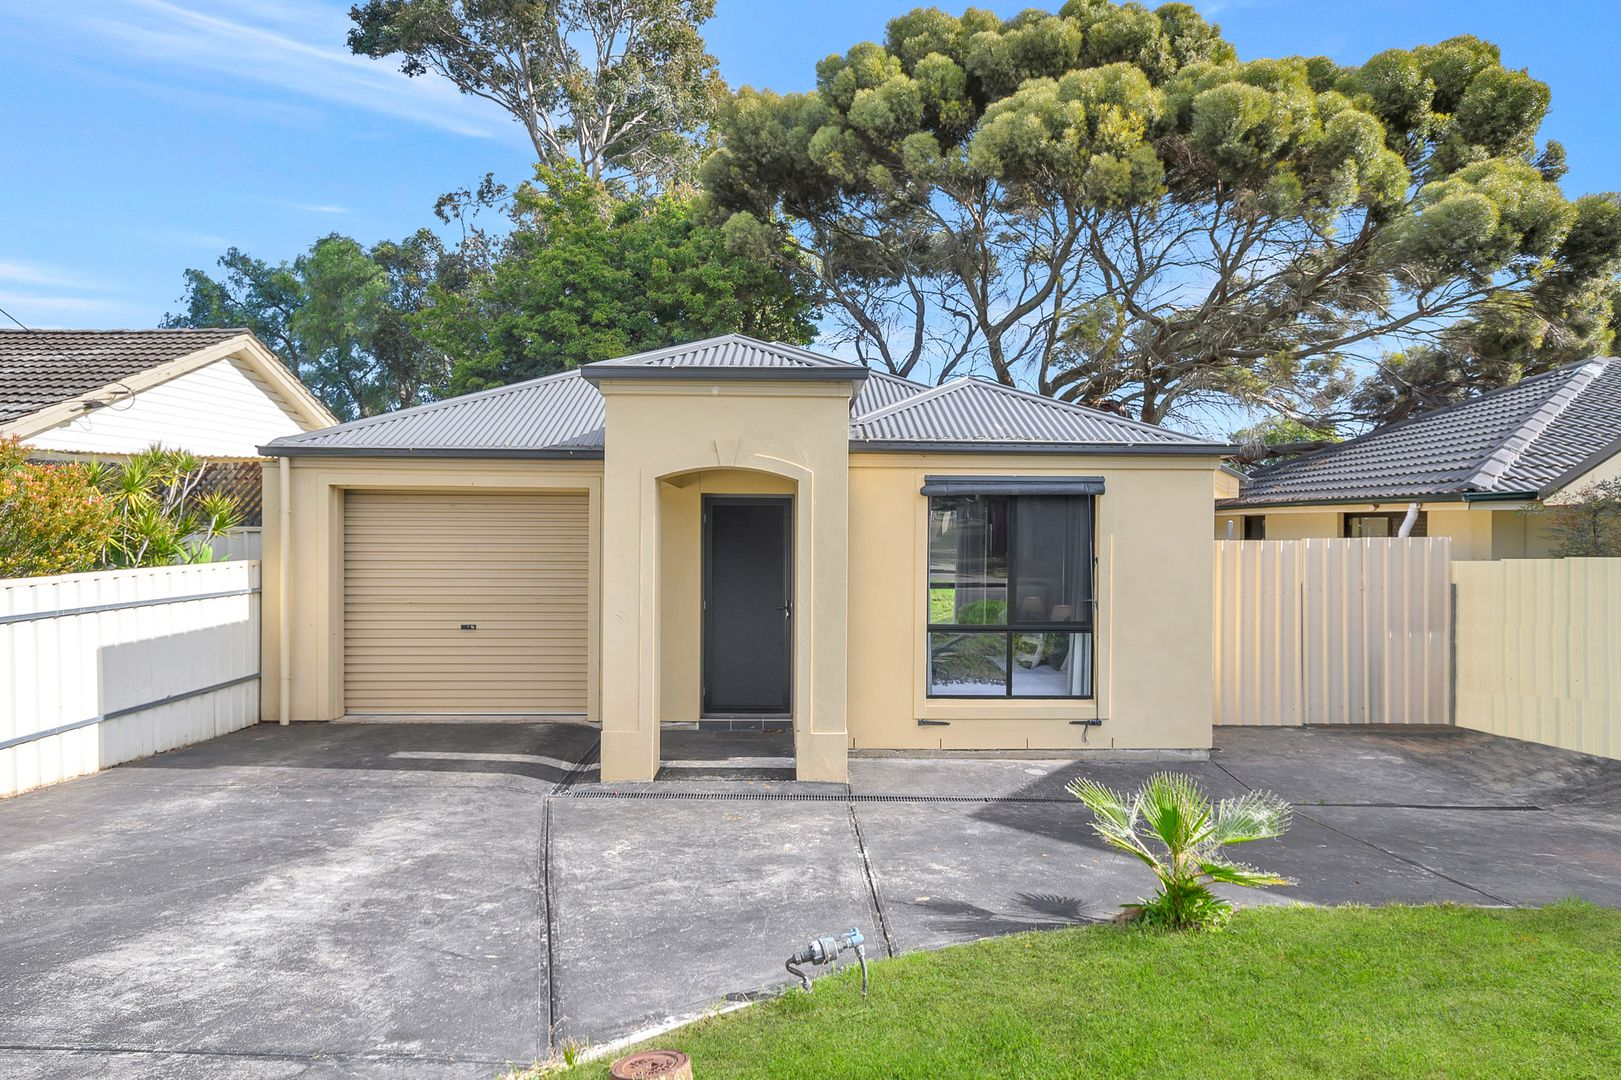 37 Christopher Road, Christie Downs SA 5164, Image 0